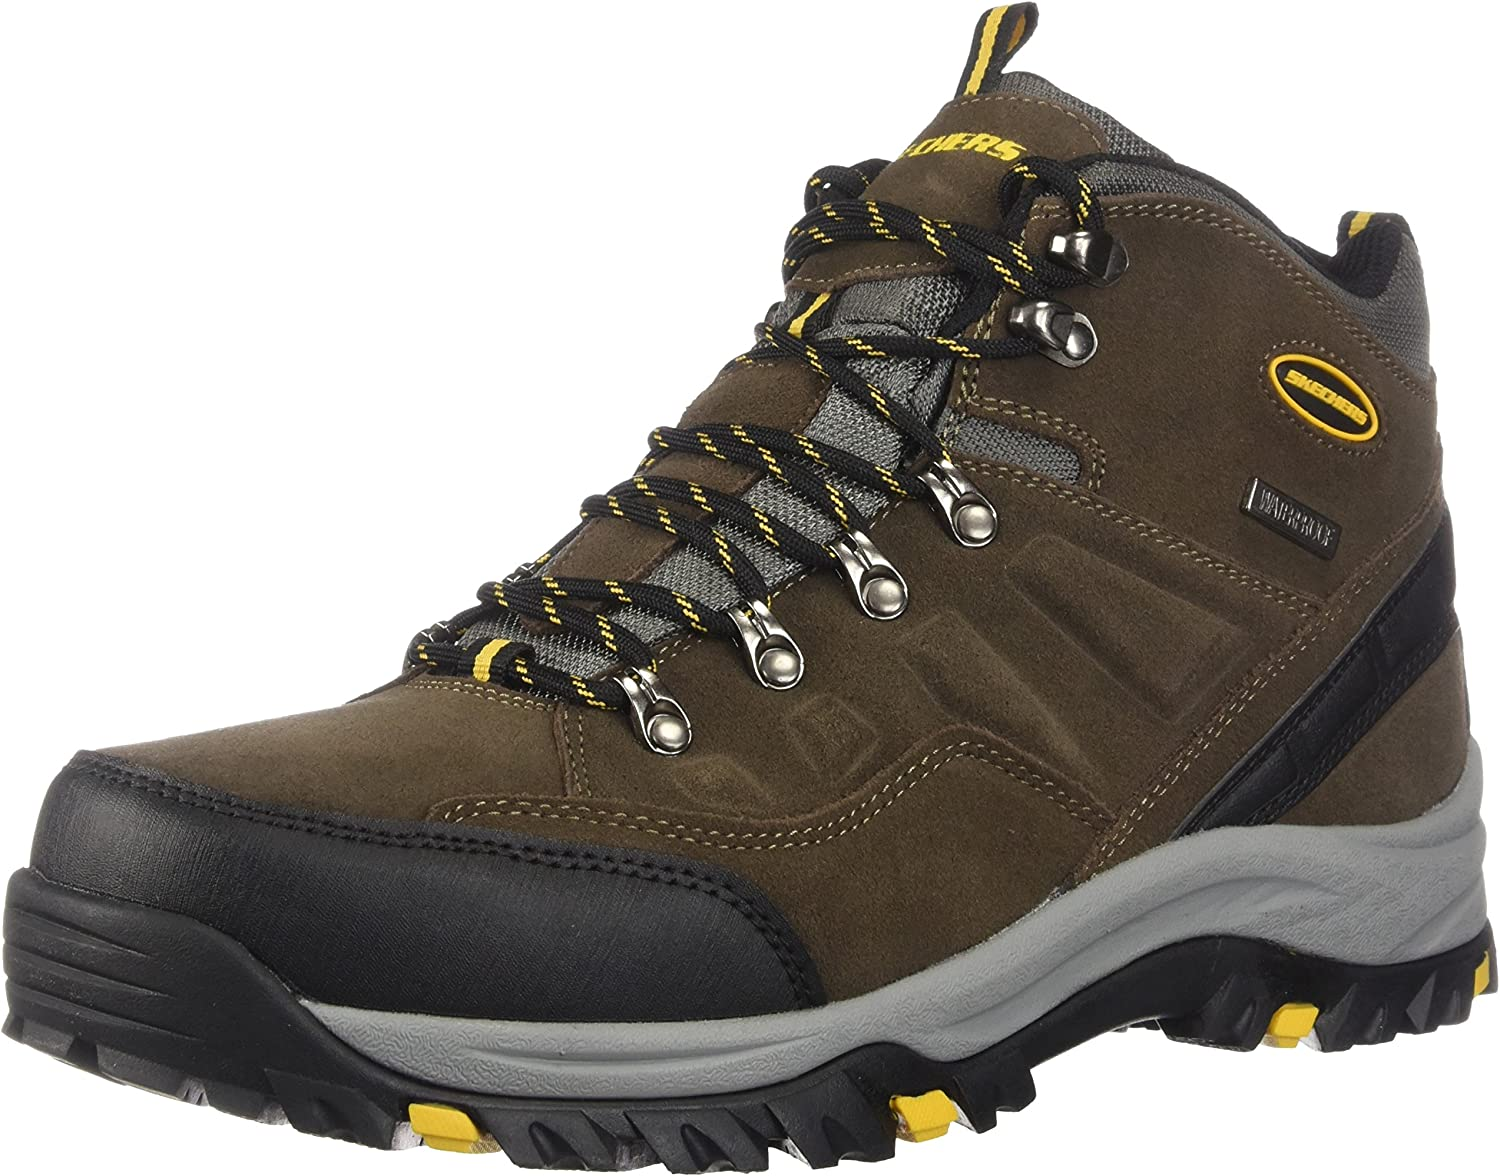 Skechers Men's Relment- Pelmo Boot